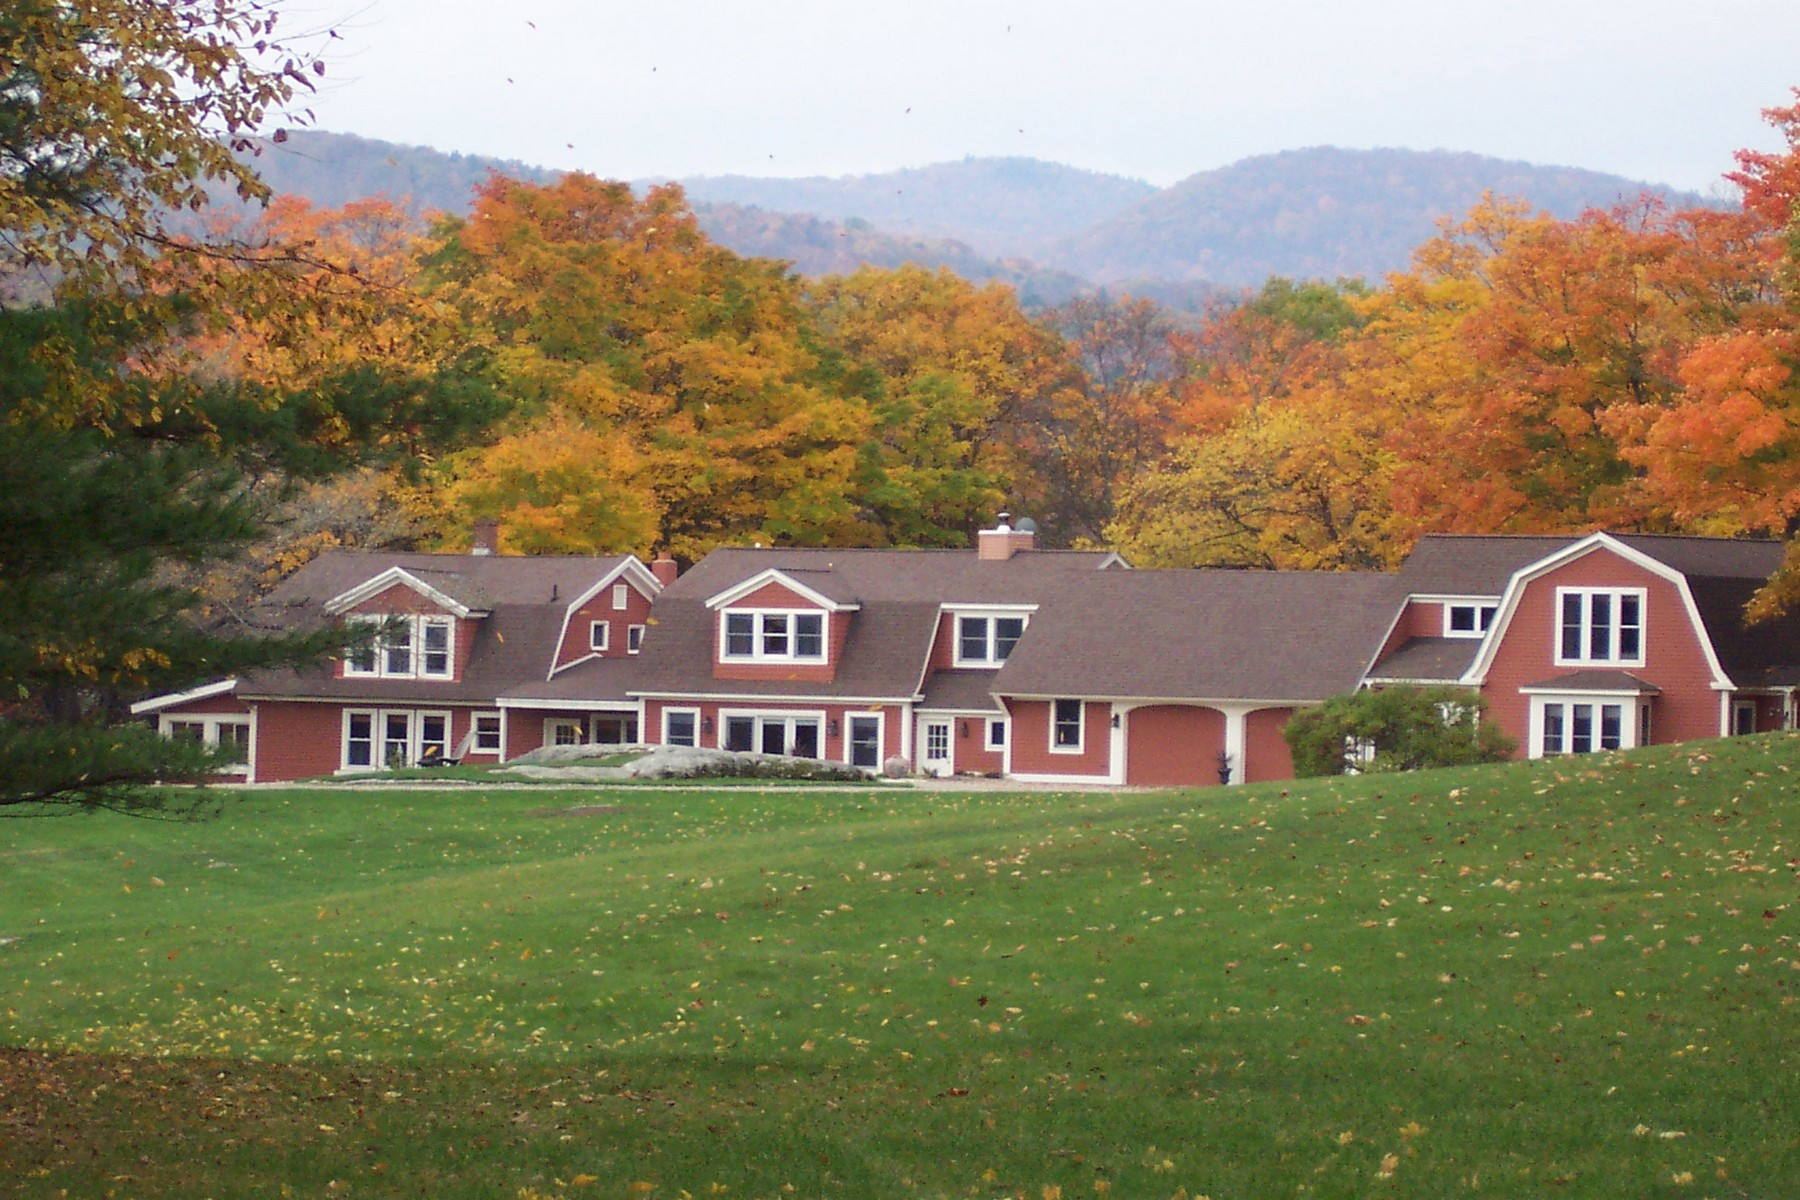 Casa Unifamiliar por un Venta en Misty Meadow Farm 709 Quarry Rd Chester, Vermont, 05143 Estados Unidos